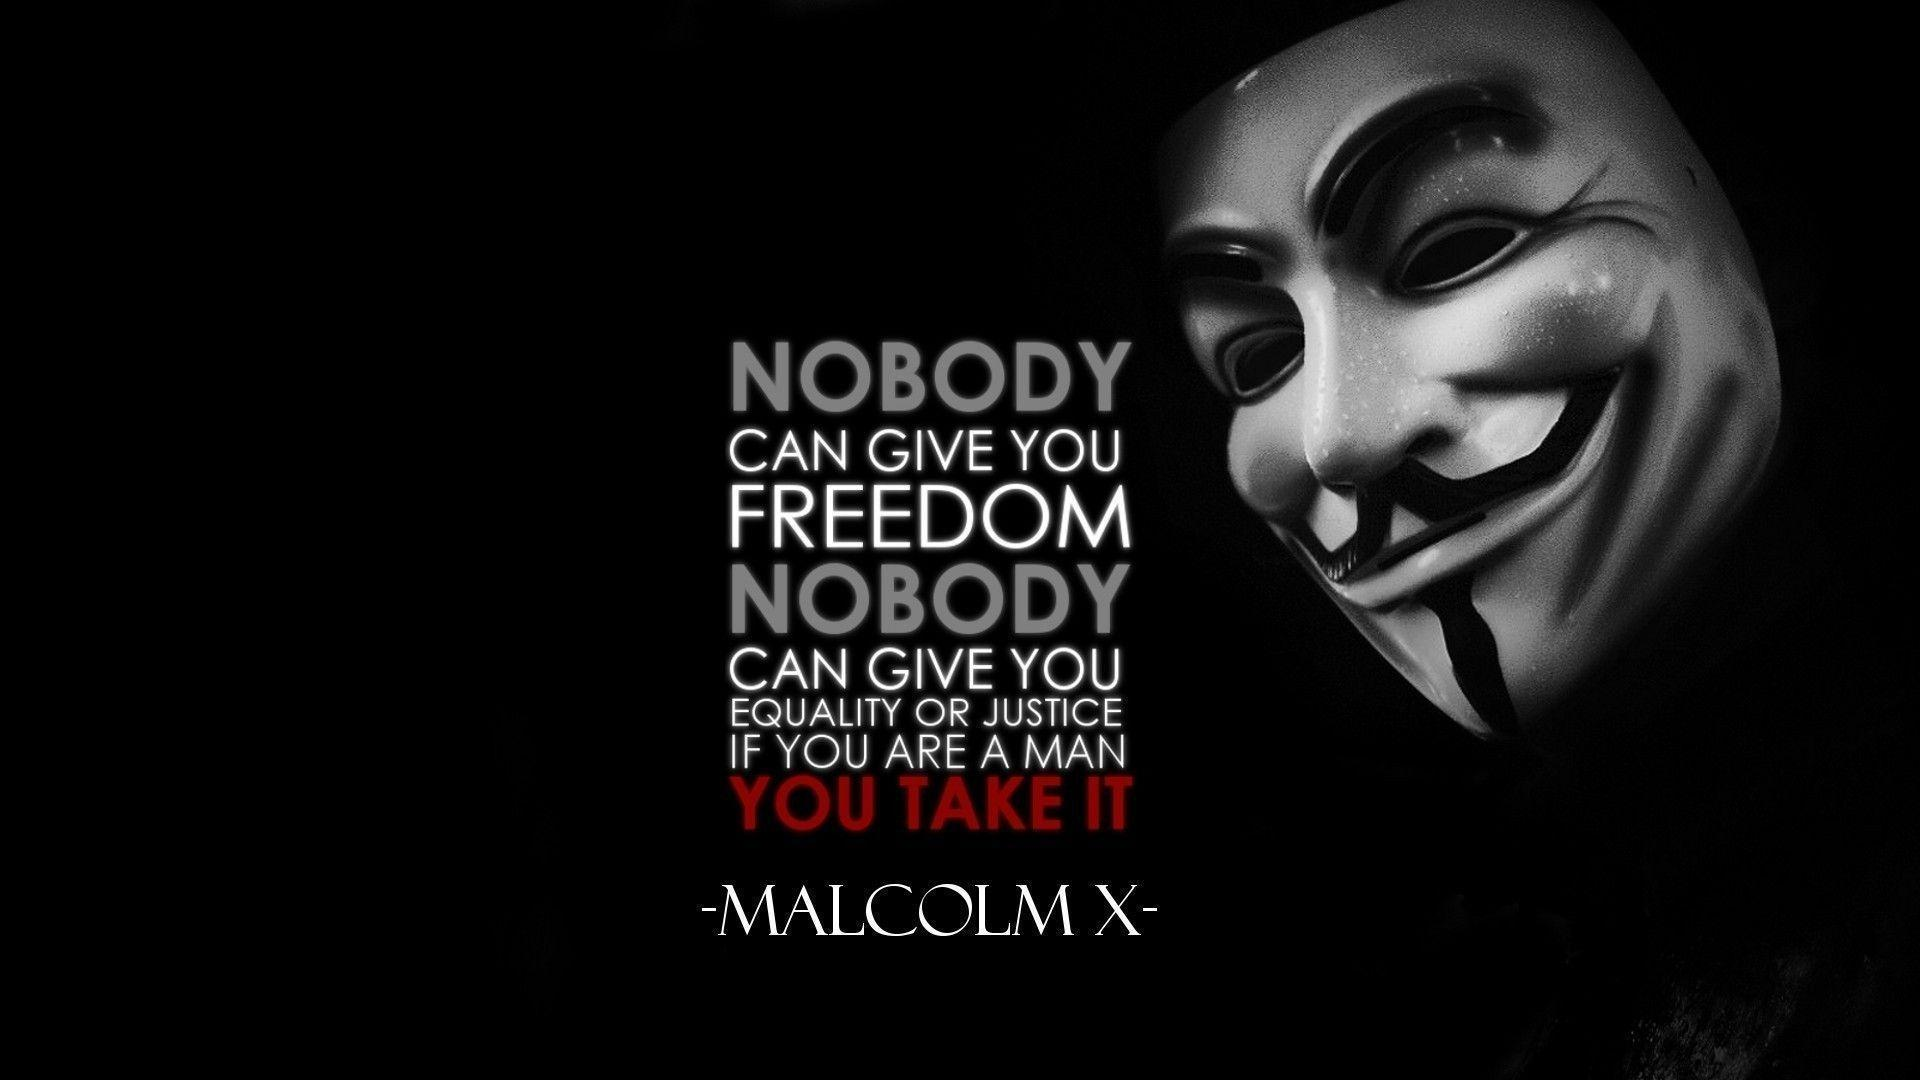 Cool Wallpapers With Quotes